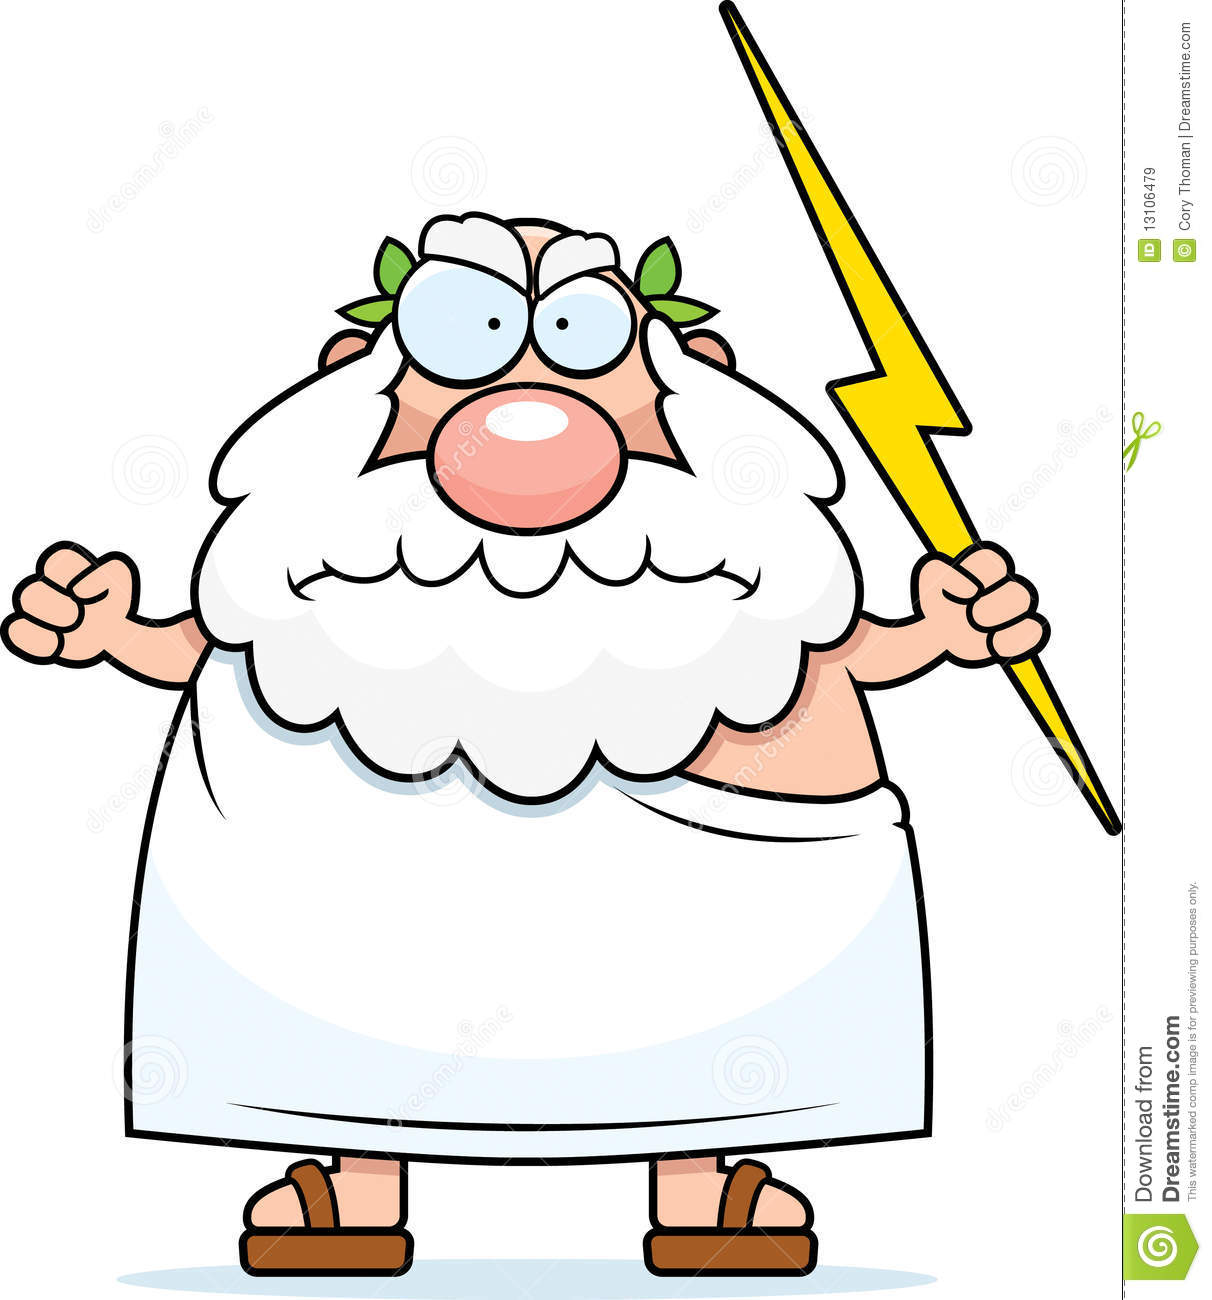 Angry God Cliparts Free Download Clip Art.